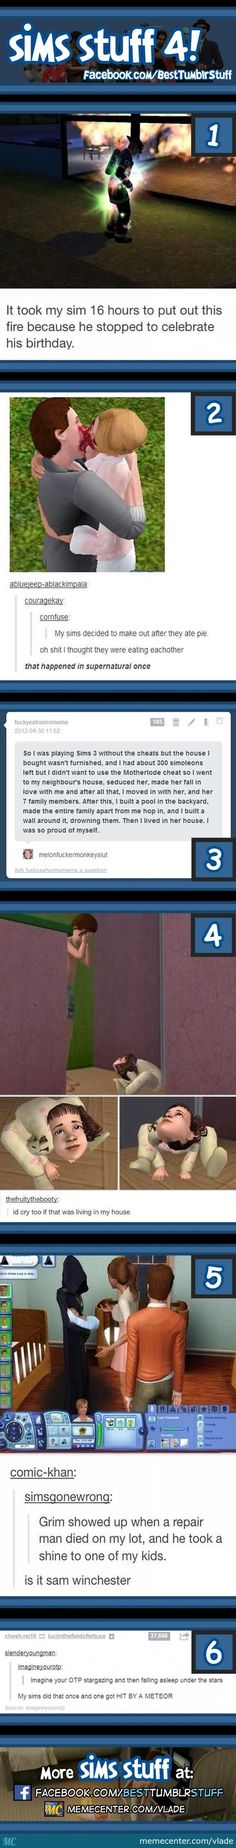 I love the Sims...i'm also a HUGE fan of the multiple Supernatural references @Jes Megan our fandom is HUGE!